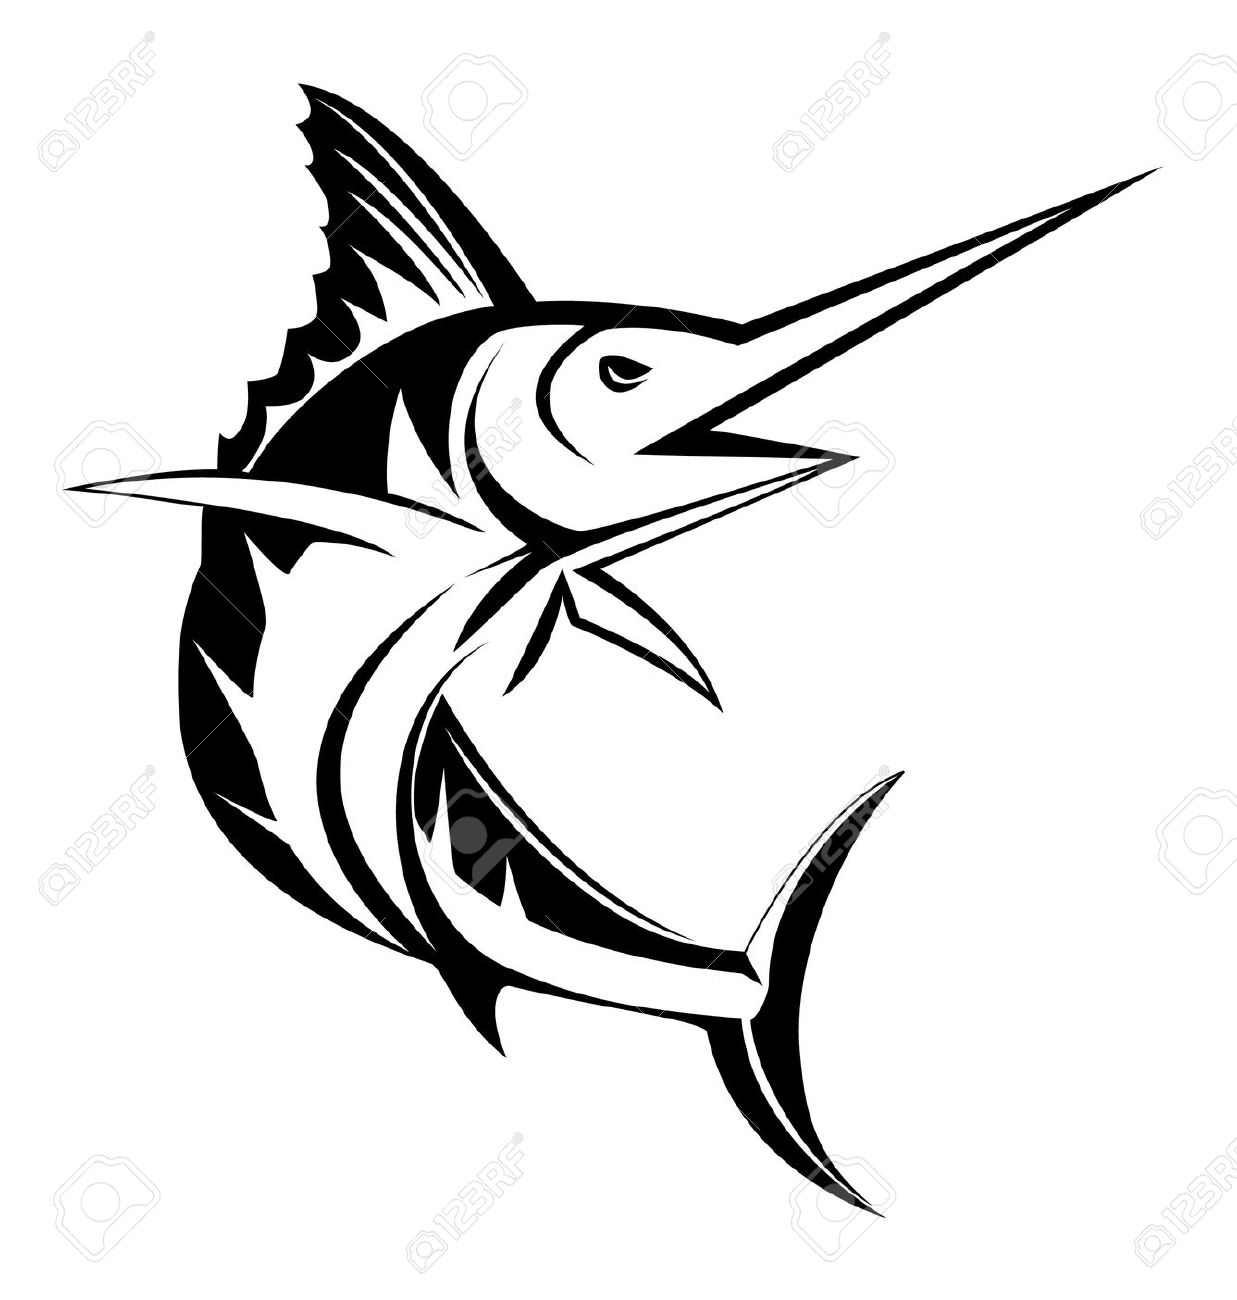 http://clipground.com/images/marlin-clipart-12.jpg